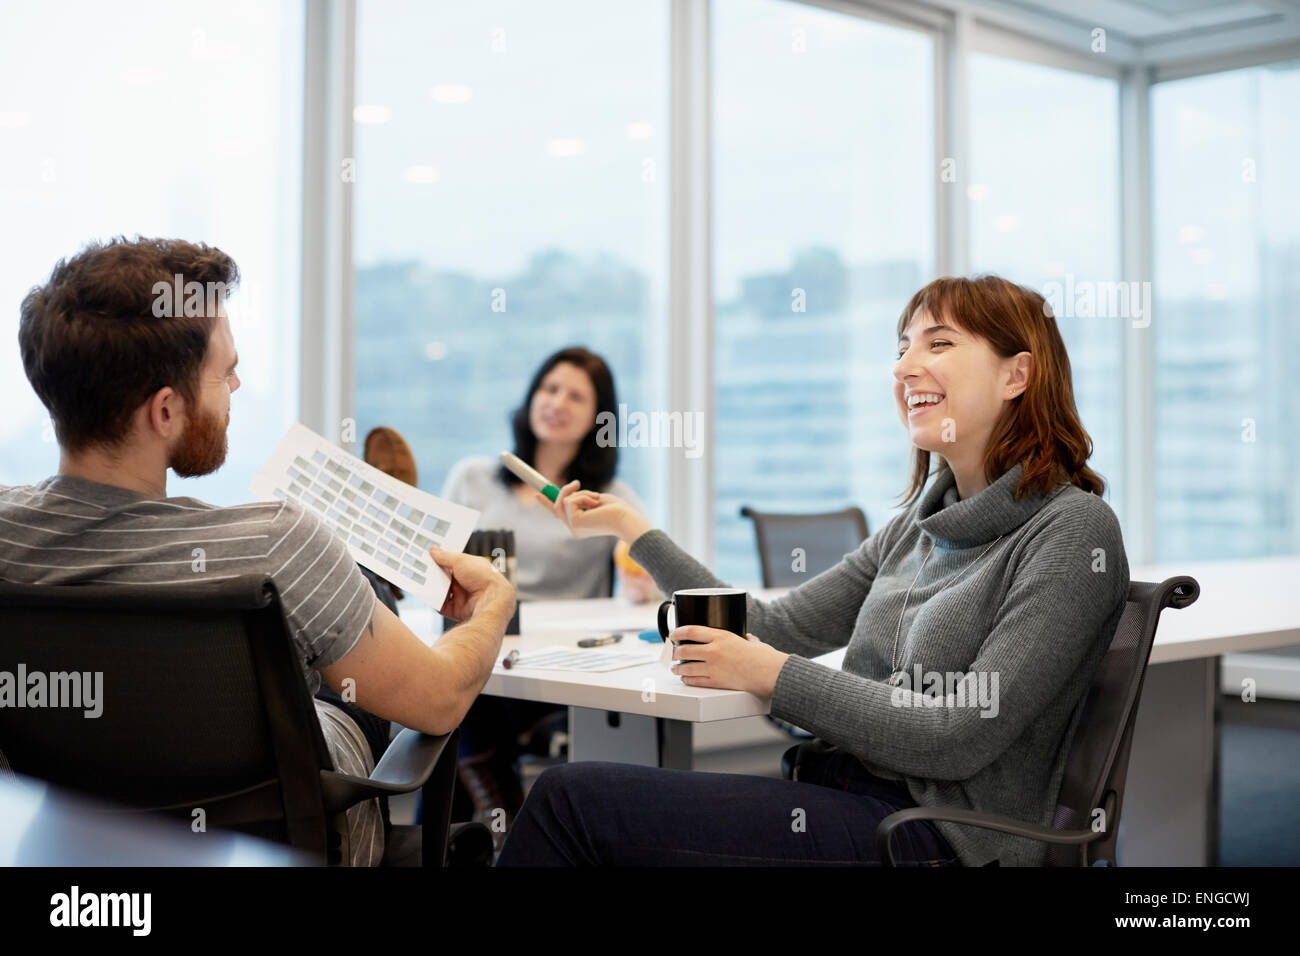 Three business people, two women and a man - Stock Image